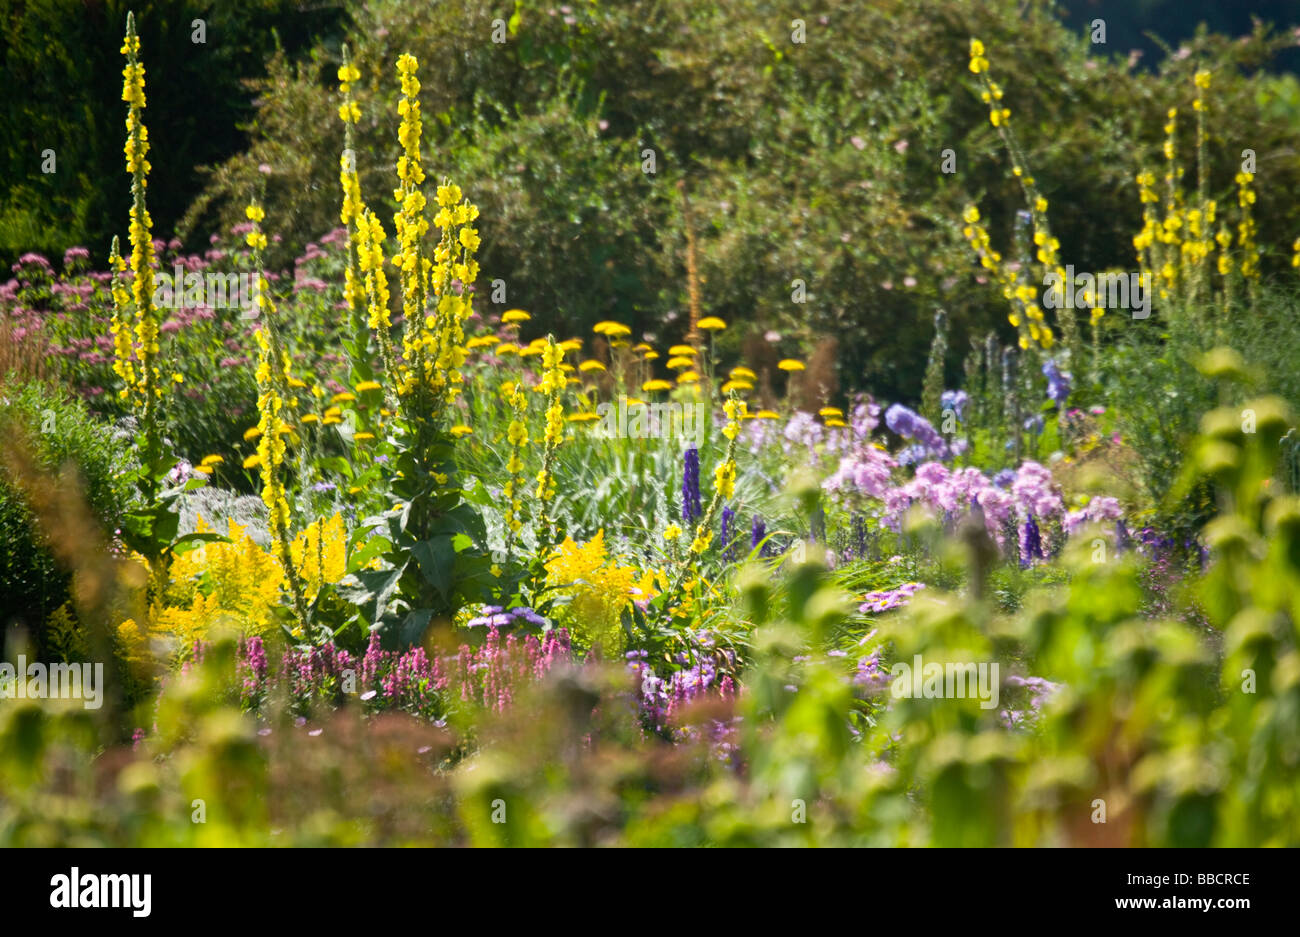 Herbaceous Perennial Border Of Tall Yellow Spikes Of Verbascum